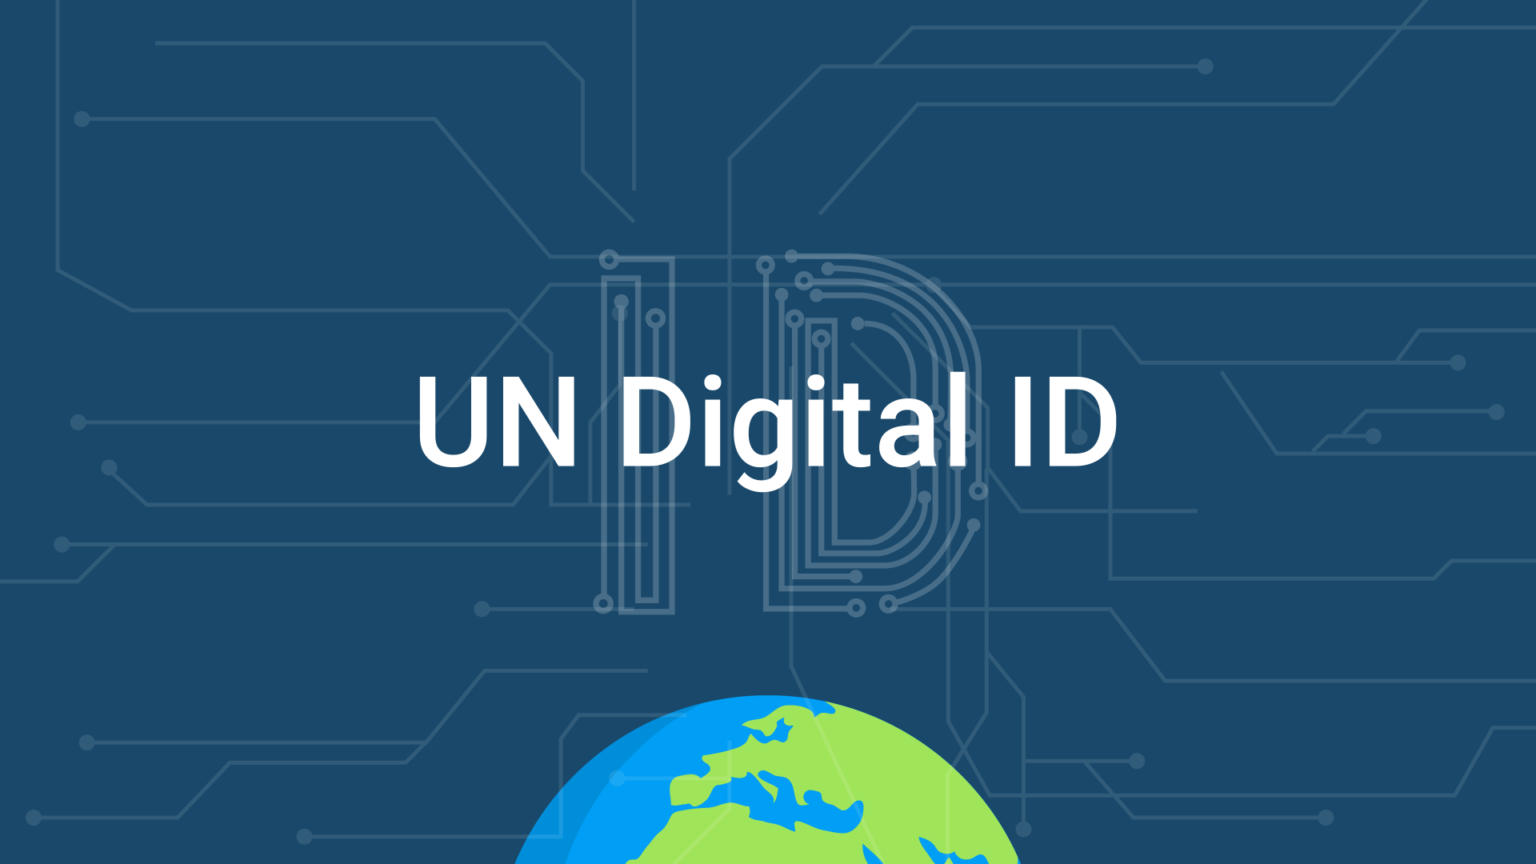 UN Digital ID – A Building Block for UN Digital Cooperation